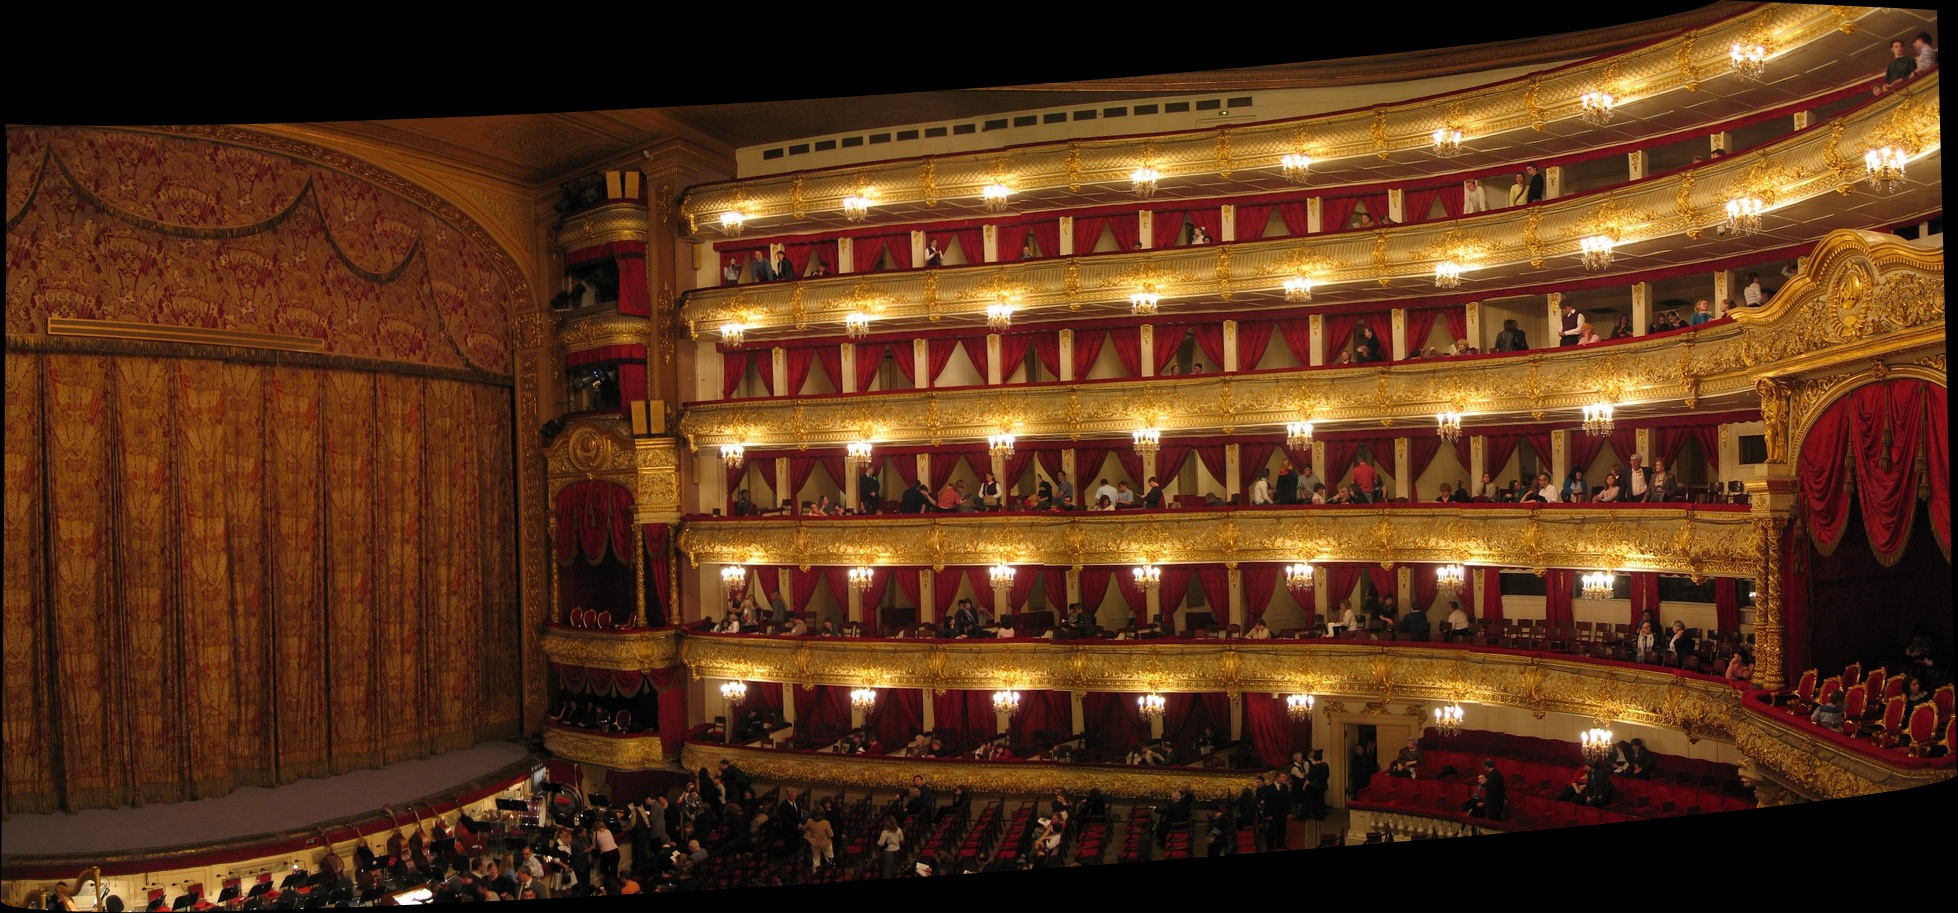 http://upload.wikimedia.org/wikipedia/commons/6/66/Inside_Moscow_Bolshoi_Theatre.jpg